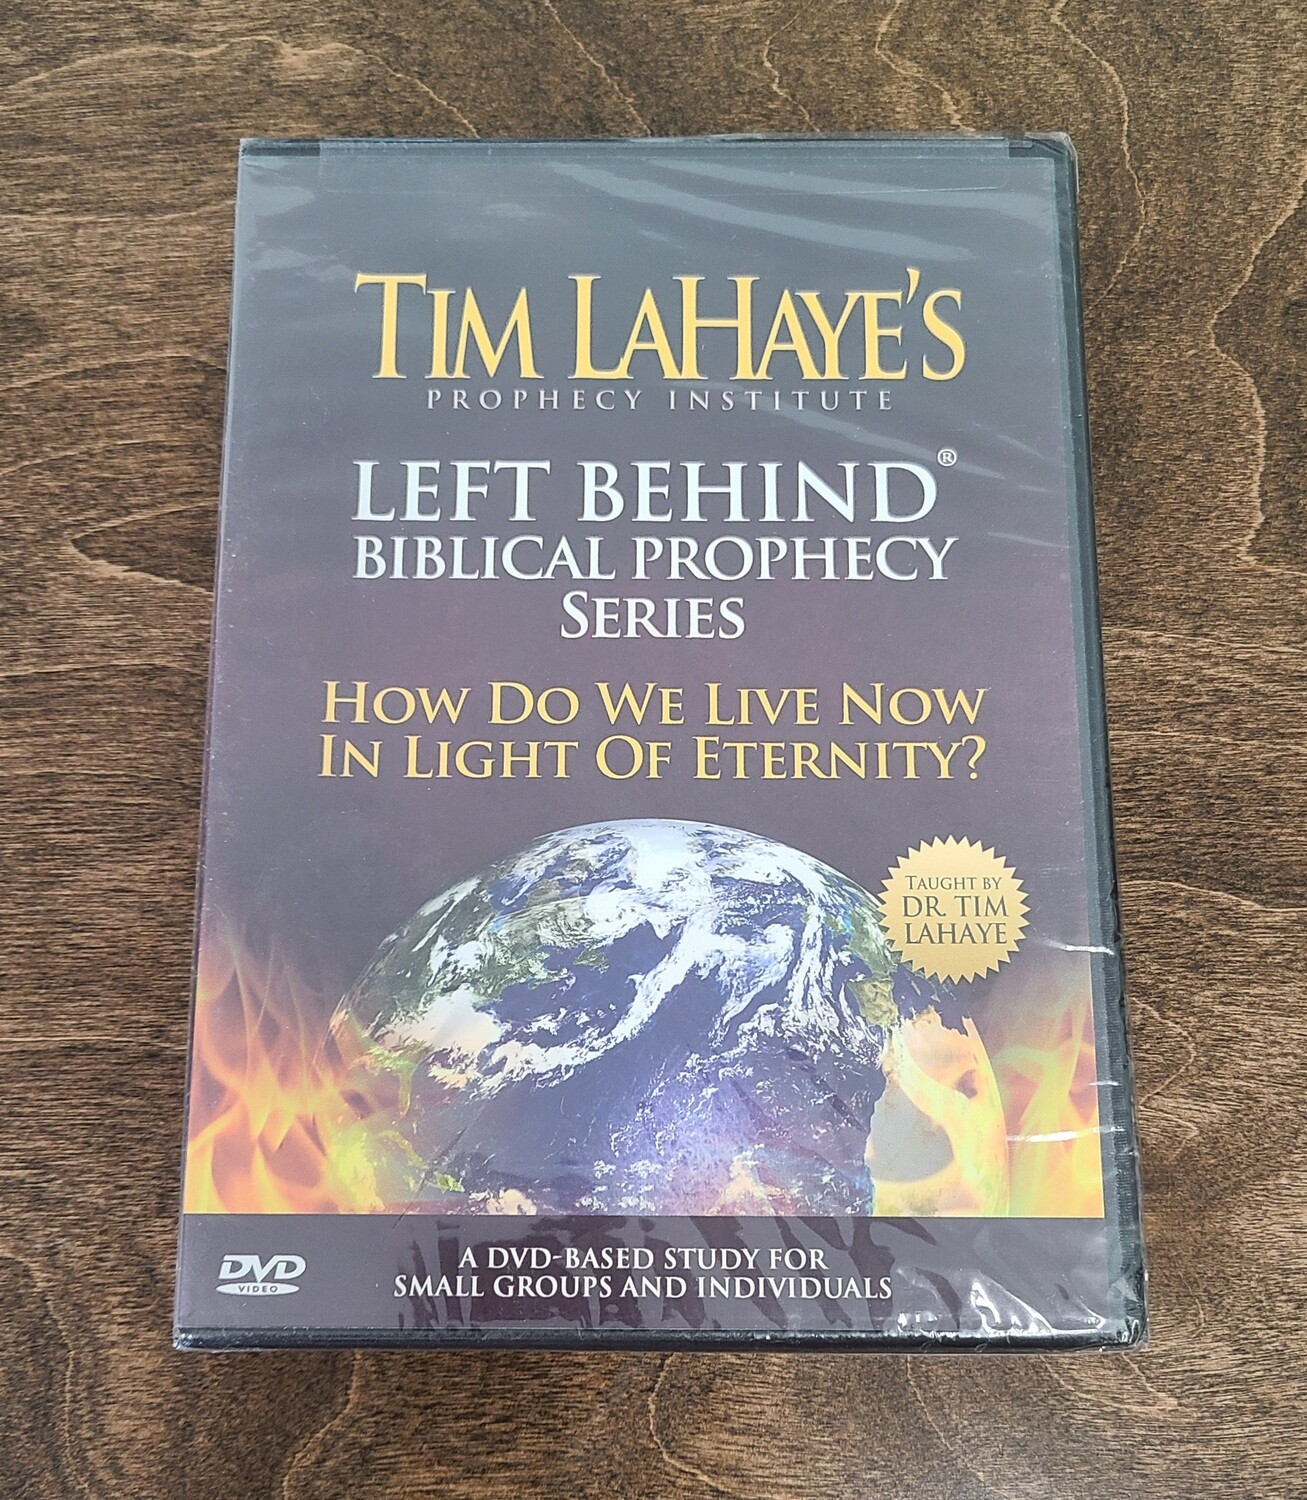 Tim LaHaye's Left Behind Biblical Prophecy Series: How Do we Live Now in Light of Eternity?